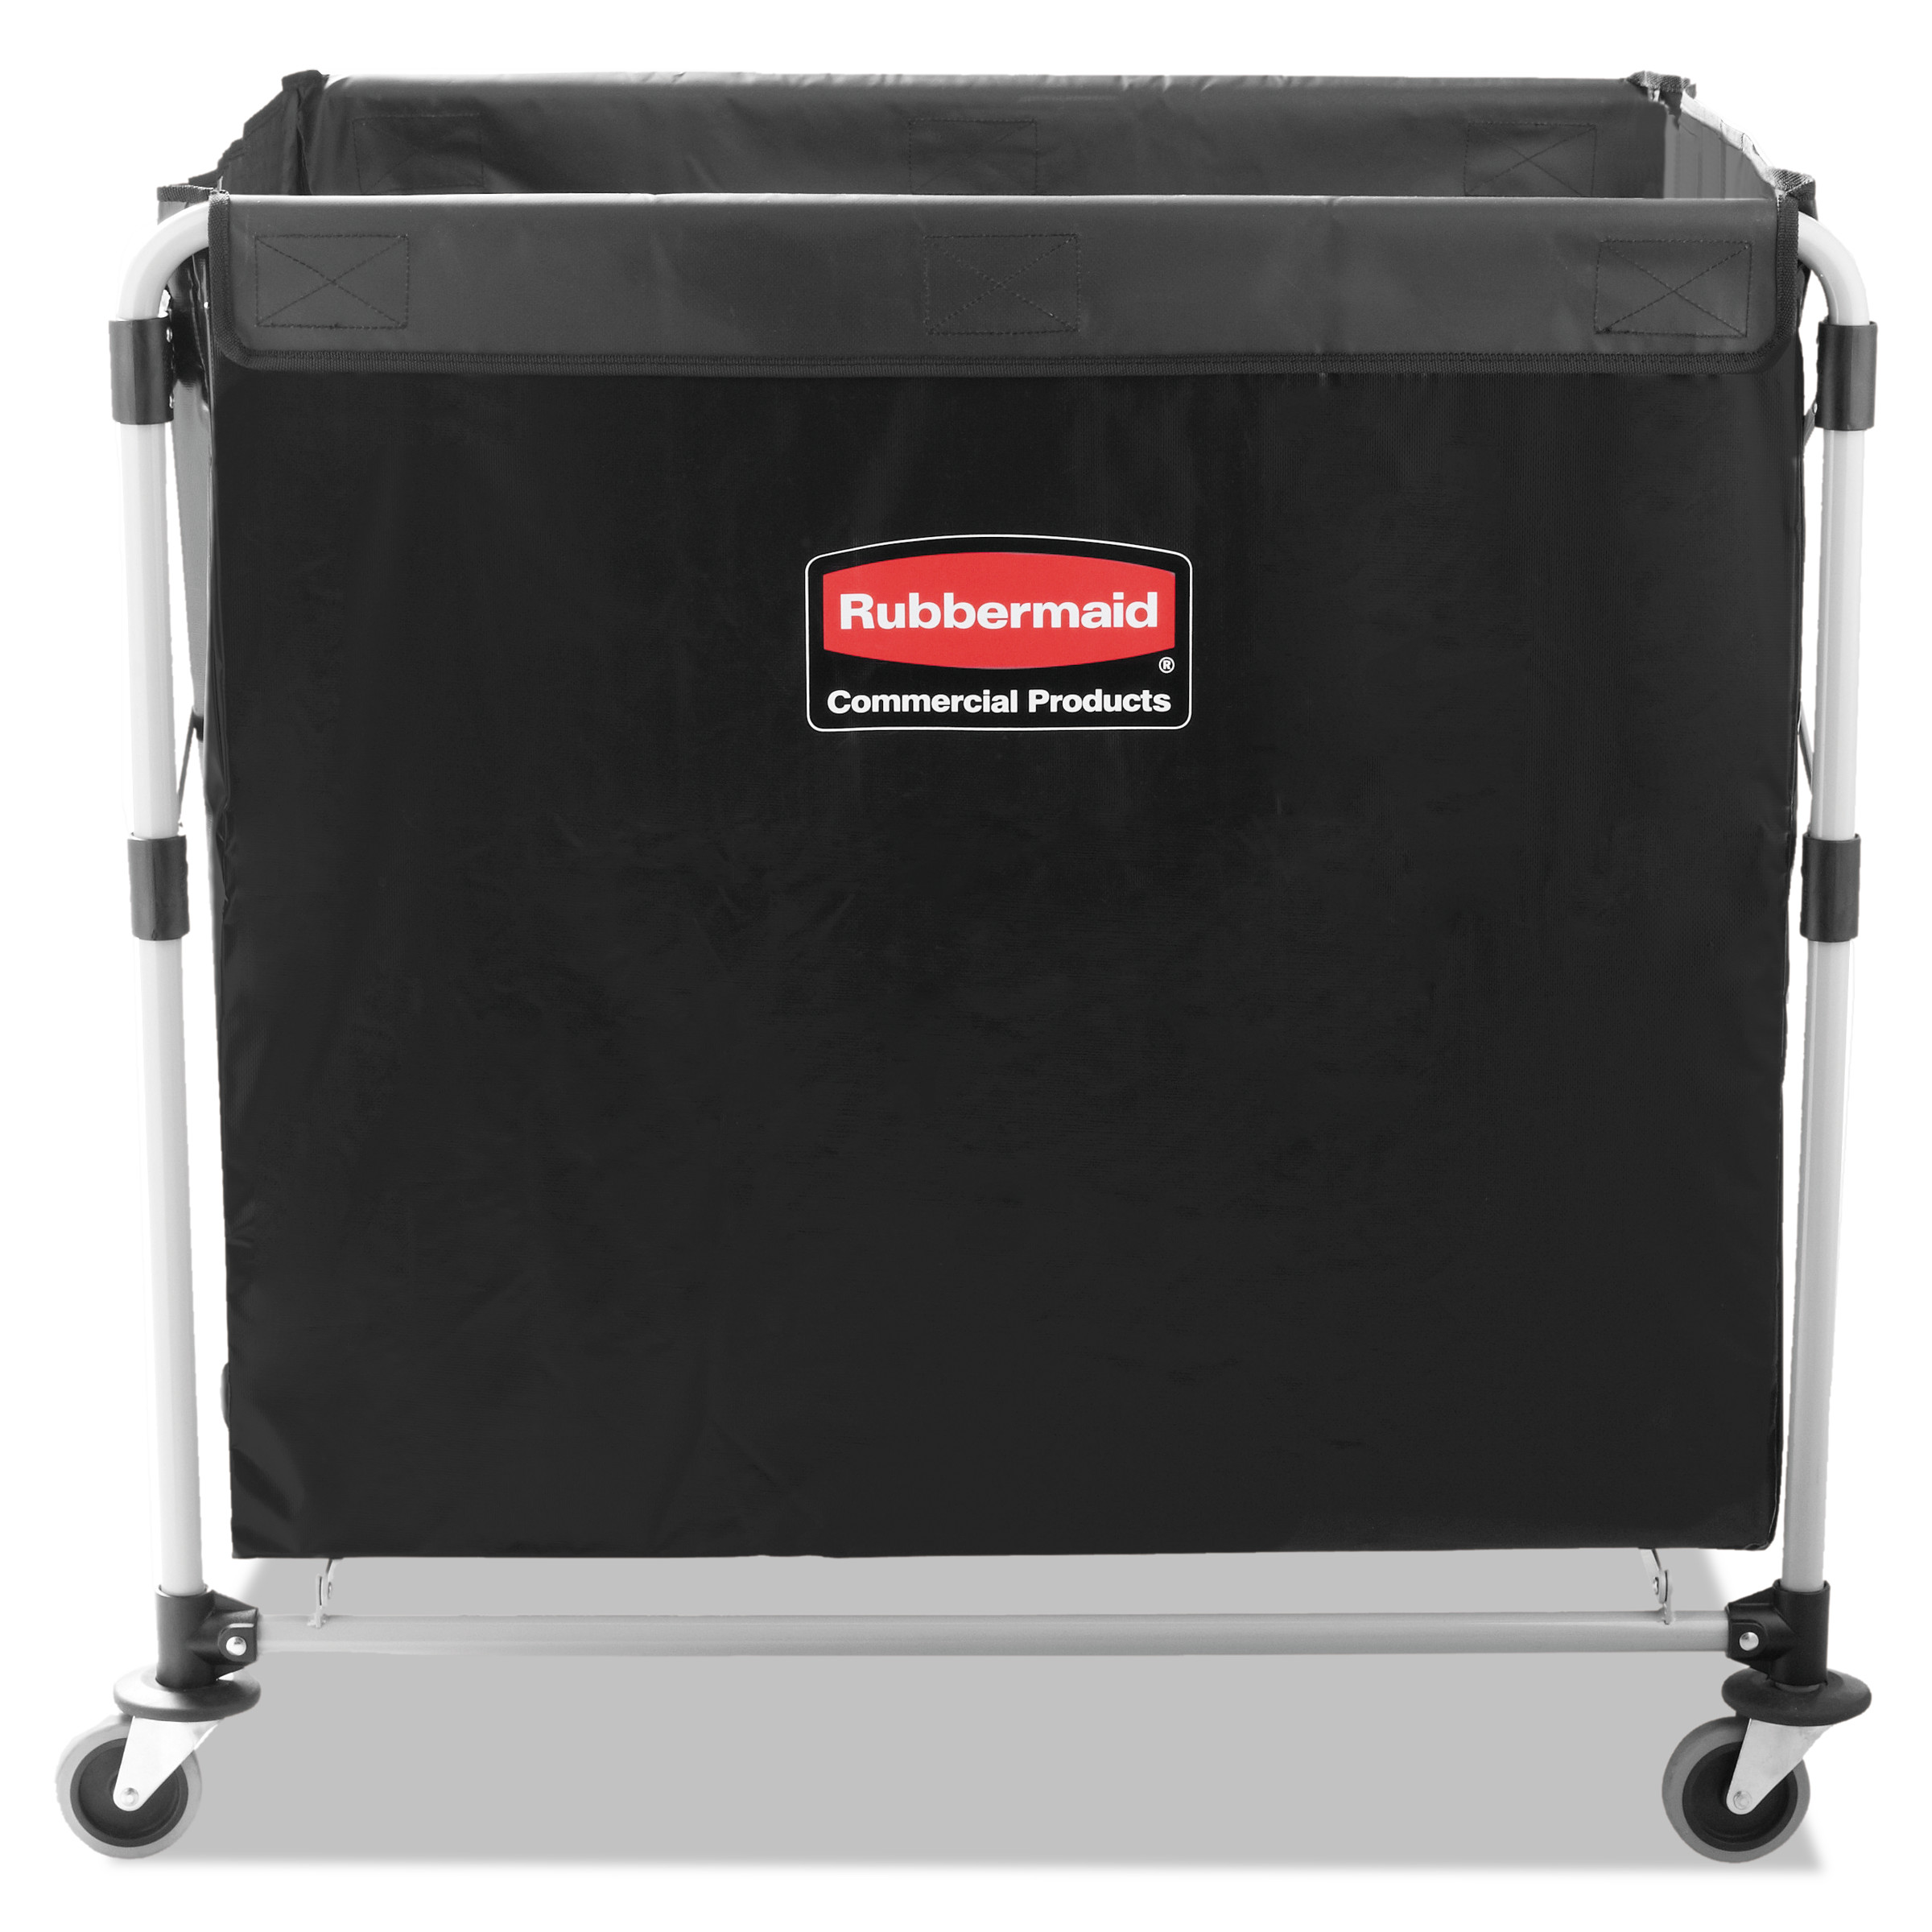 rubbermaid commercial collapsible xcart steel eight bushel cart 24 1